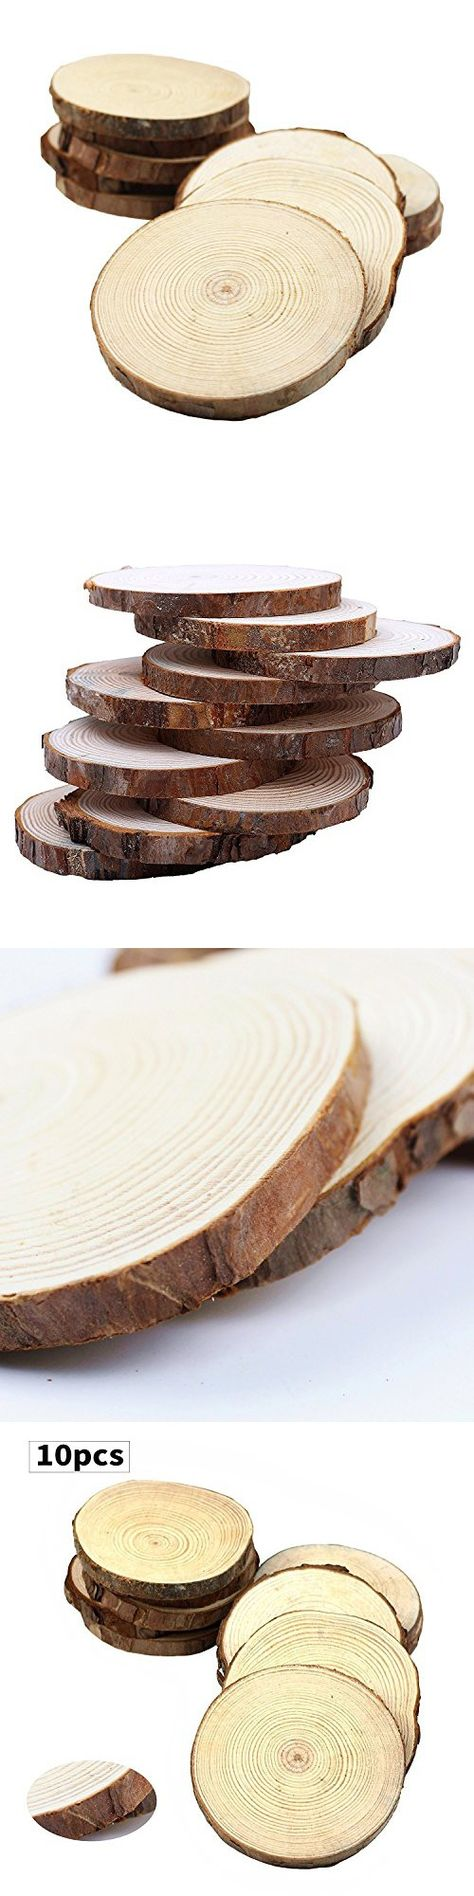 Wooden Pieces 71178: Birch... 50 Count 3 - 4 Wood Slices For ...